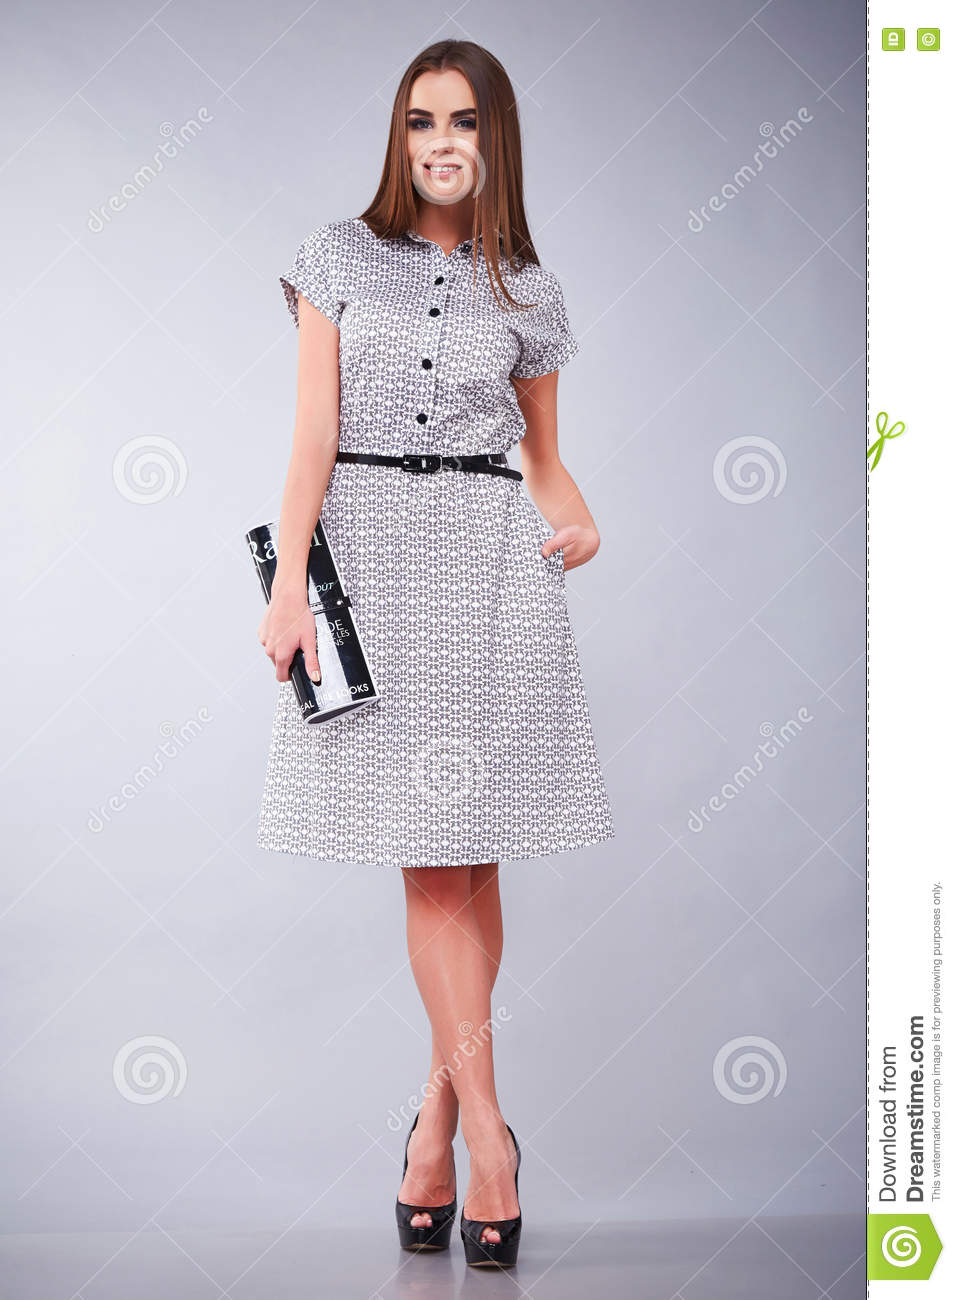 Clothes Casual And Office Business Woman Style Dress Stock Image Image Of Belt Fashion 73650805